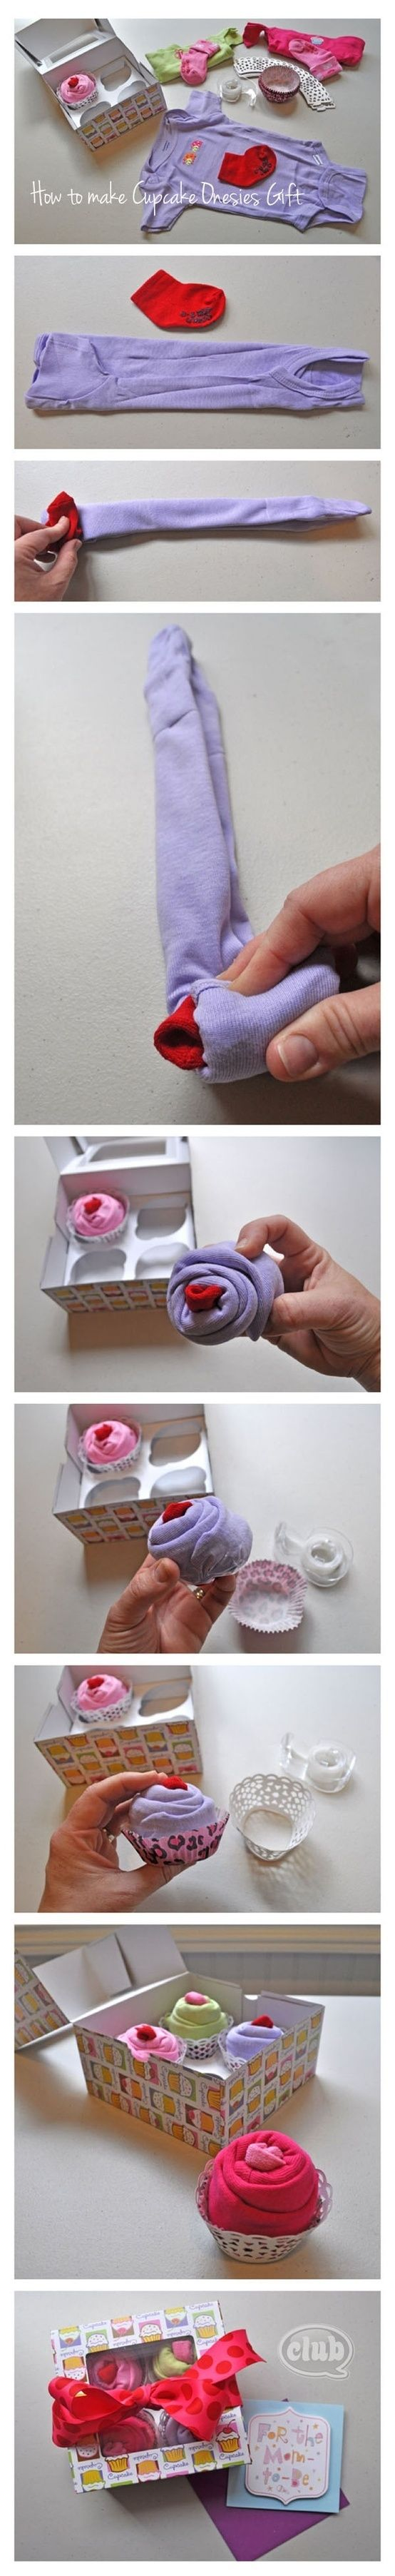 How to make onesie cupcakes for babyshower gift.... Cute idea!